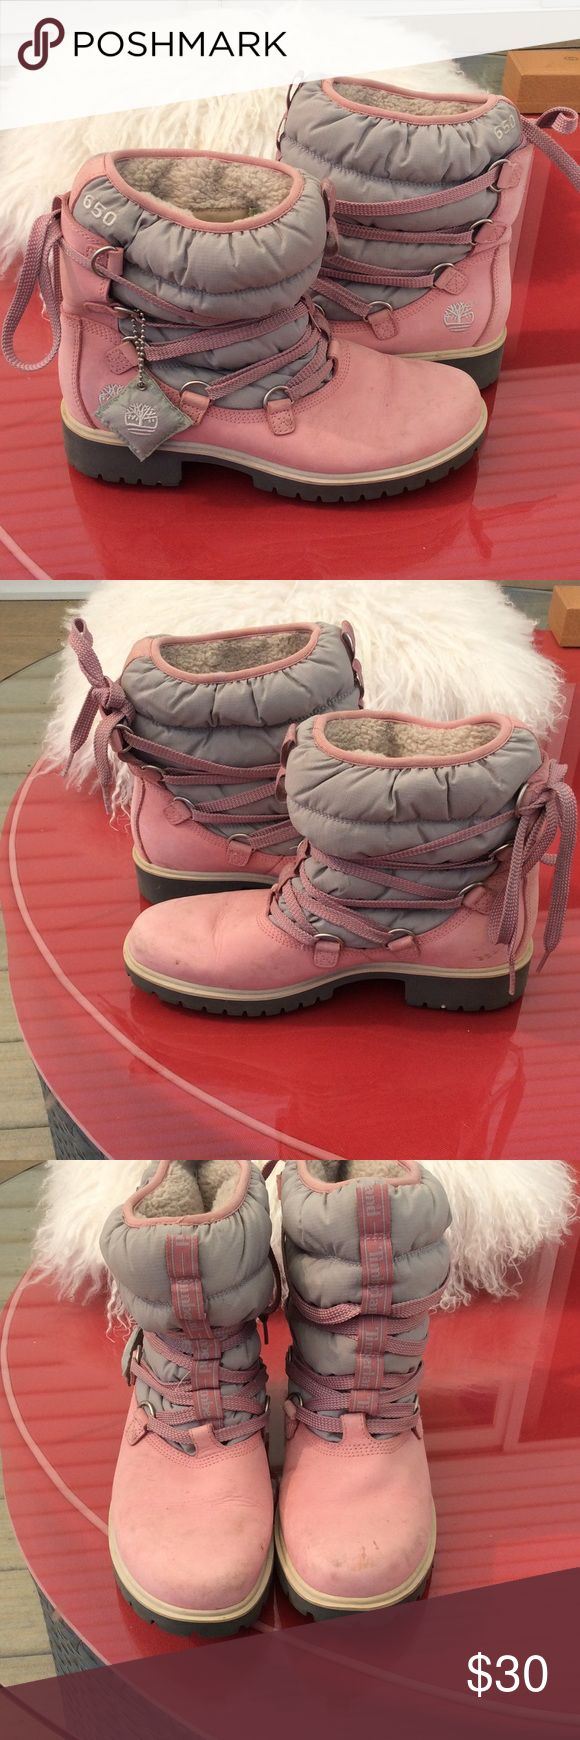 Timberland pink suede boots super cute Timberland pink and gray boots the toes have some marks but a lot of life left in them. 9/20/17 Timberland Shoes Ankle Boots & Booties